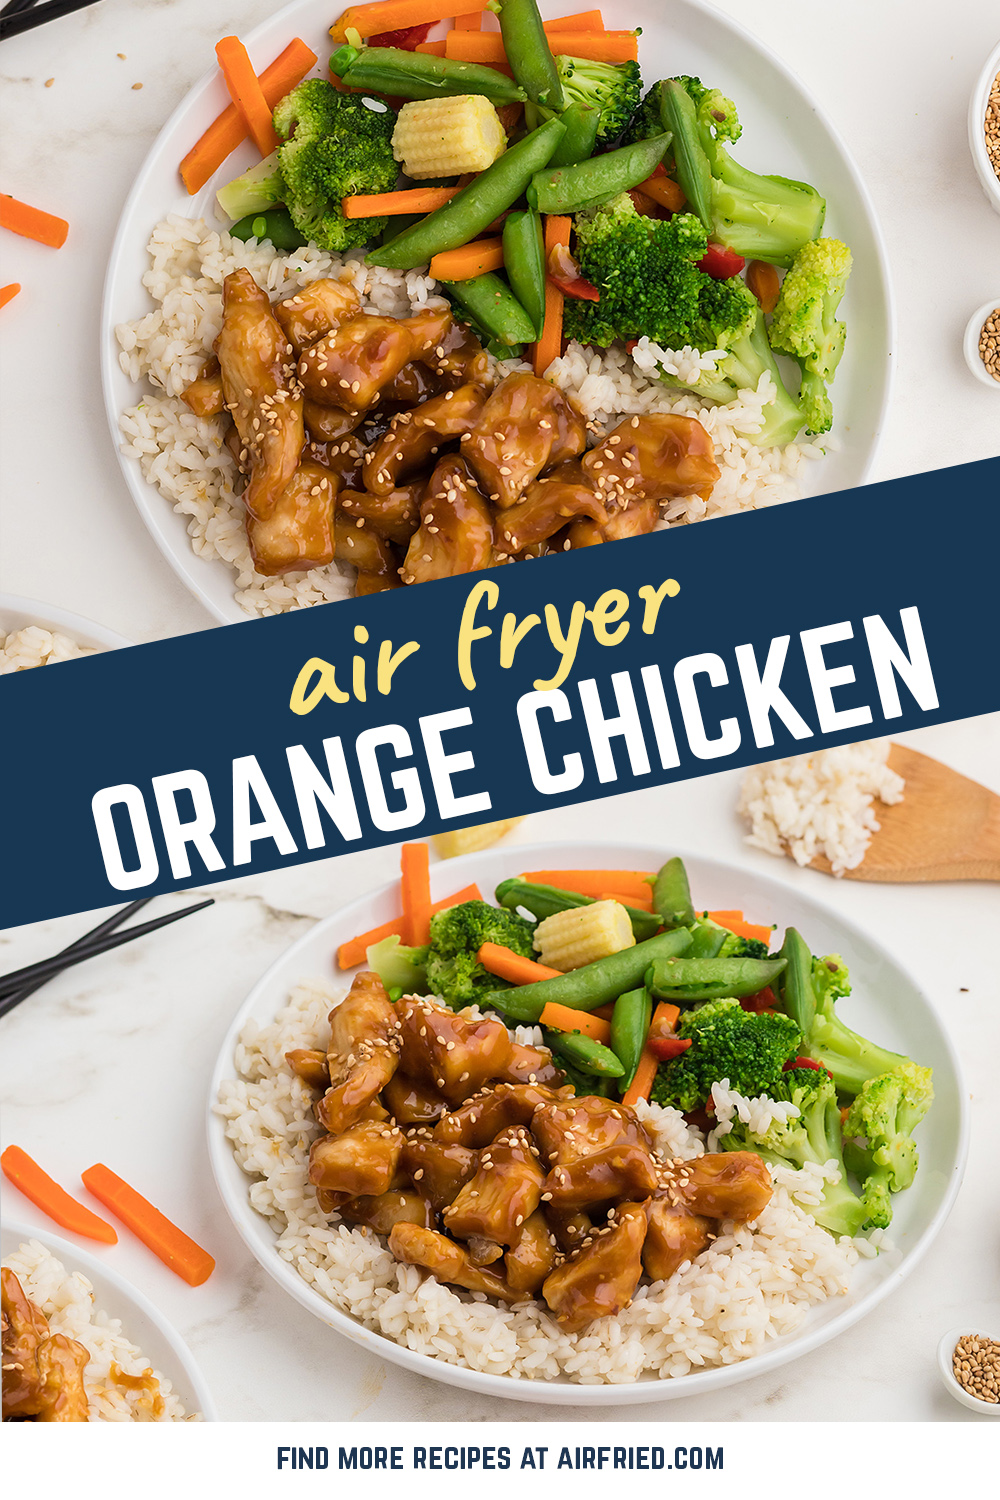 This Asian inspired orange chicken recipe is simple to make and tastes so good! #airfried #recipes #chicken